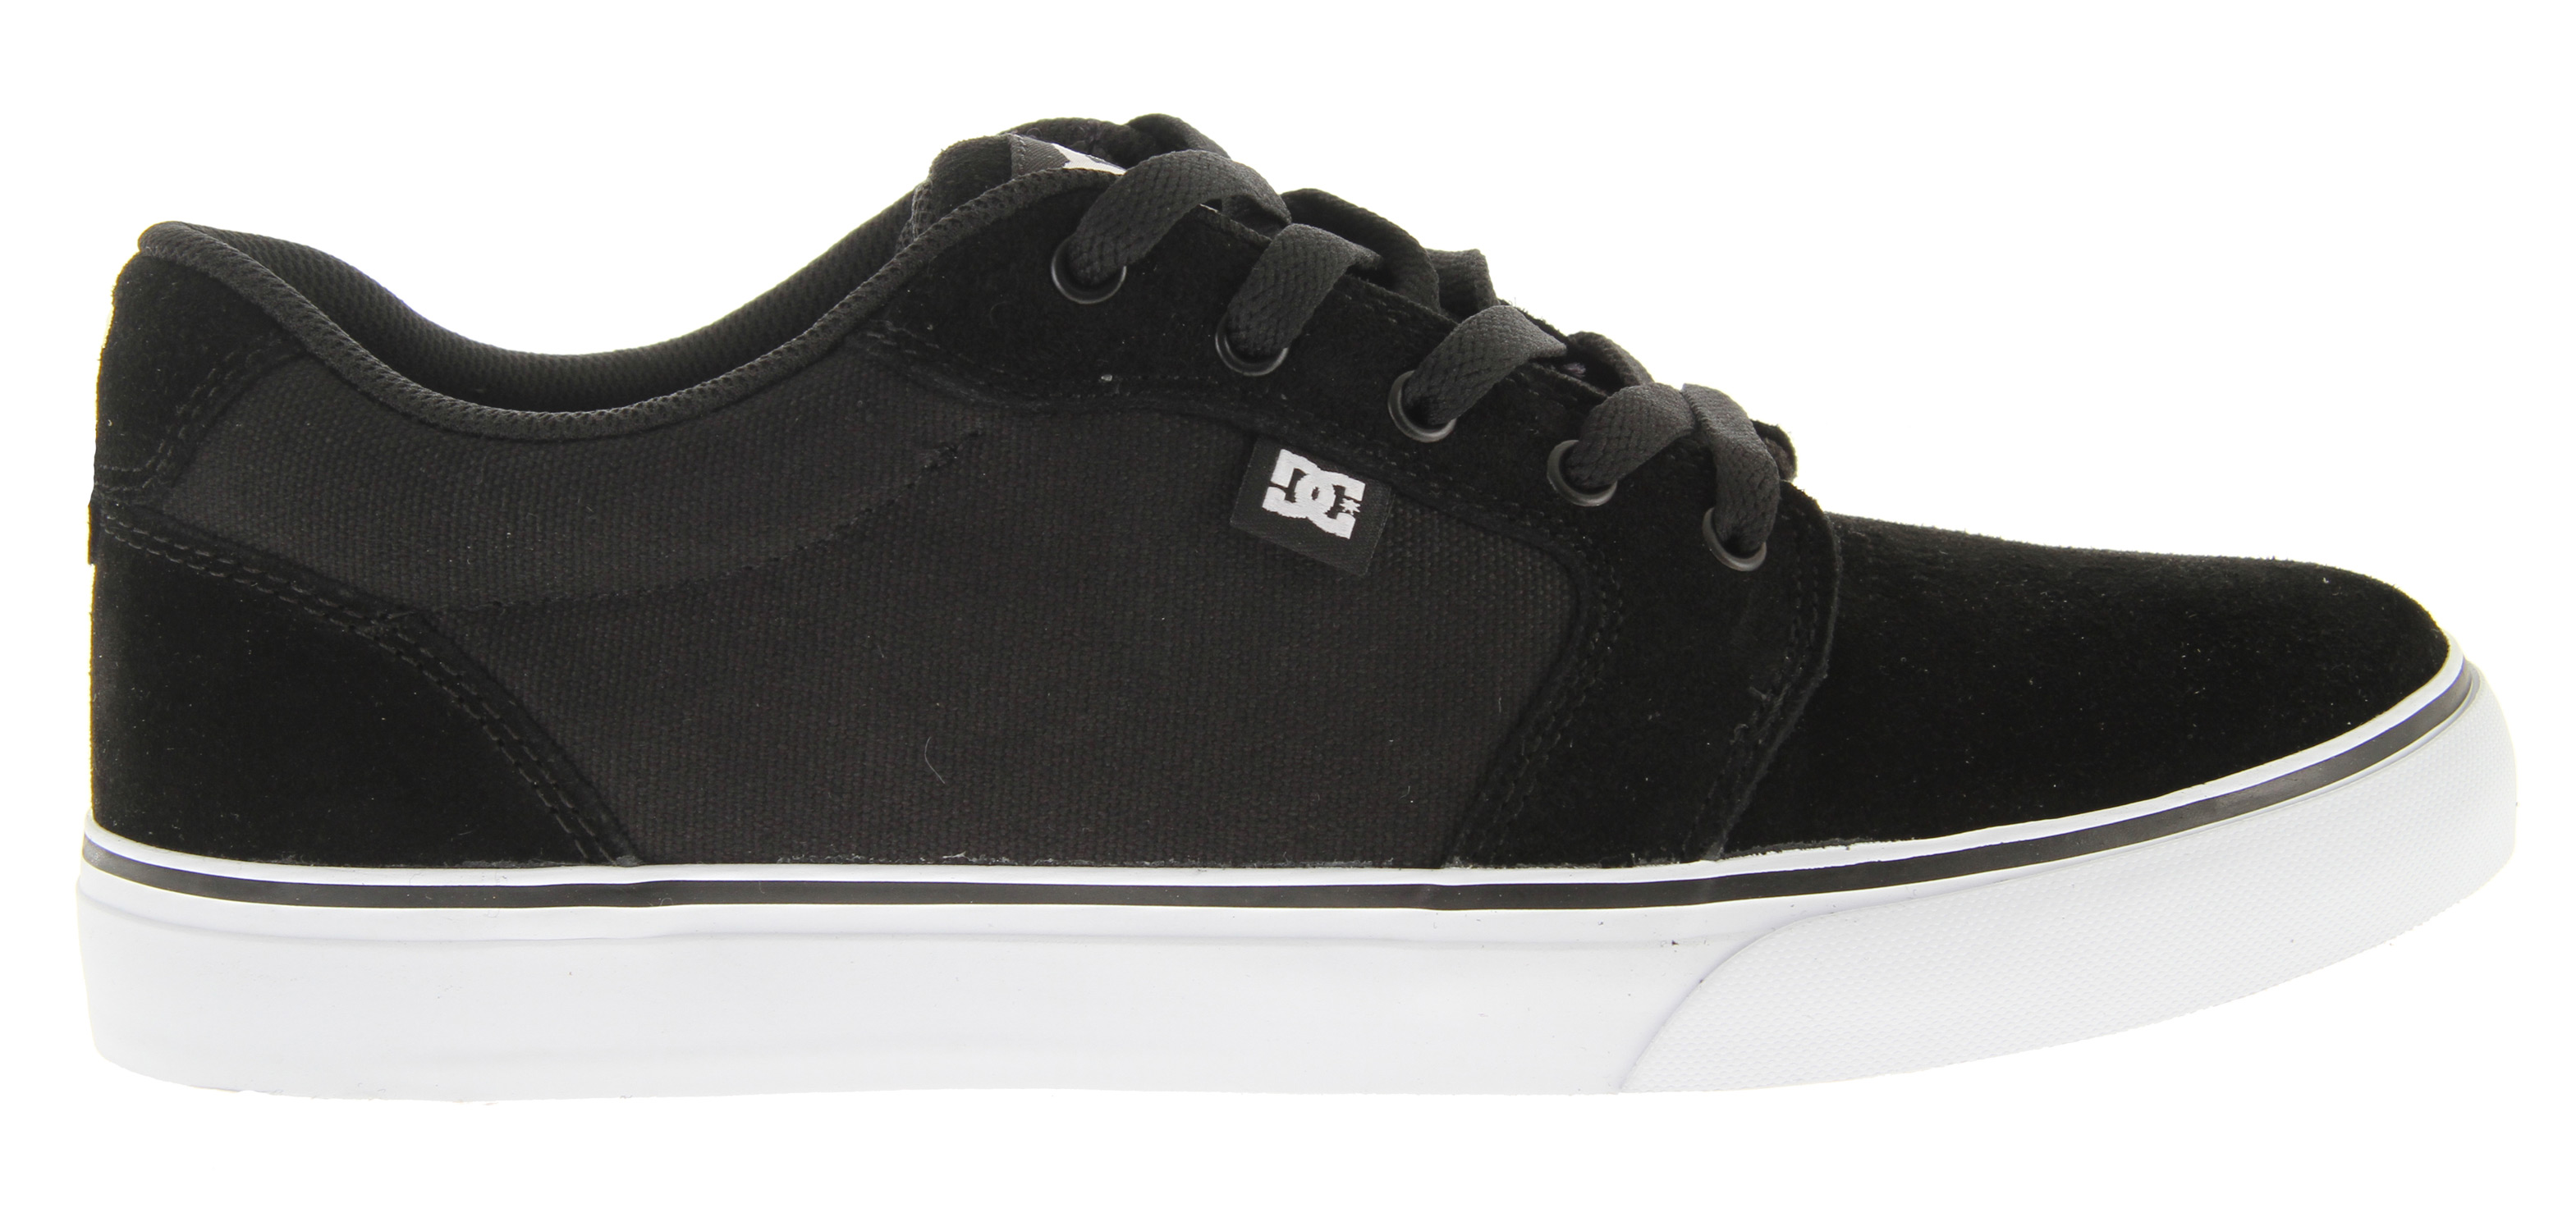 "Skateboard Key Features of the DC Anvil Skate Shoes: Features Heavy Duty Suede upper vent holes in upper for increased air flow Vulcanized construction for great board feel and sole flex Abrasion resistant sticky rubber outsole DC's Trademarked ""Pill Pattern"" bottom - $54.95"